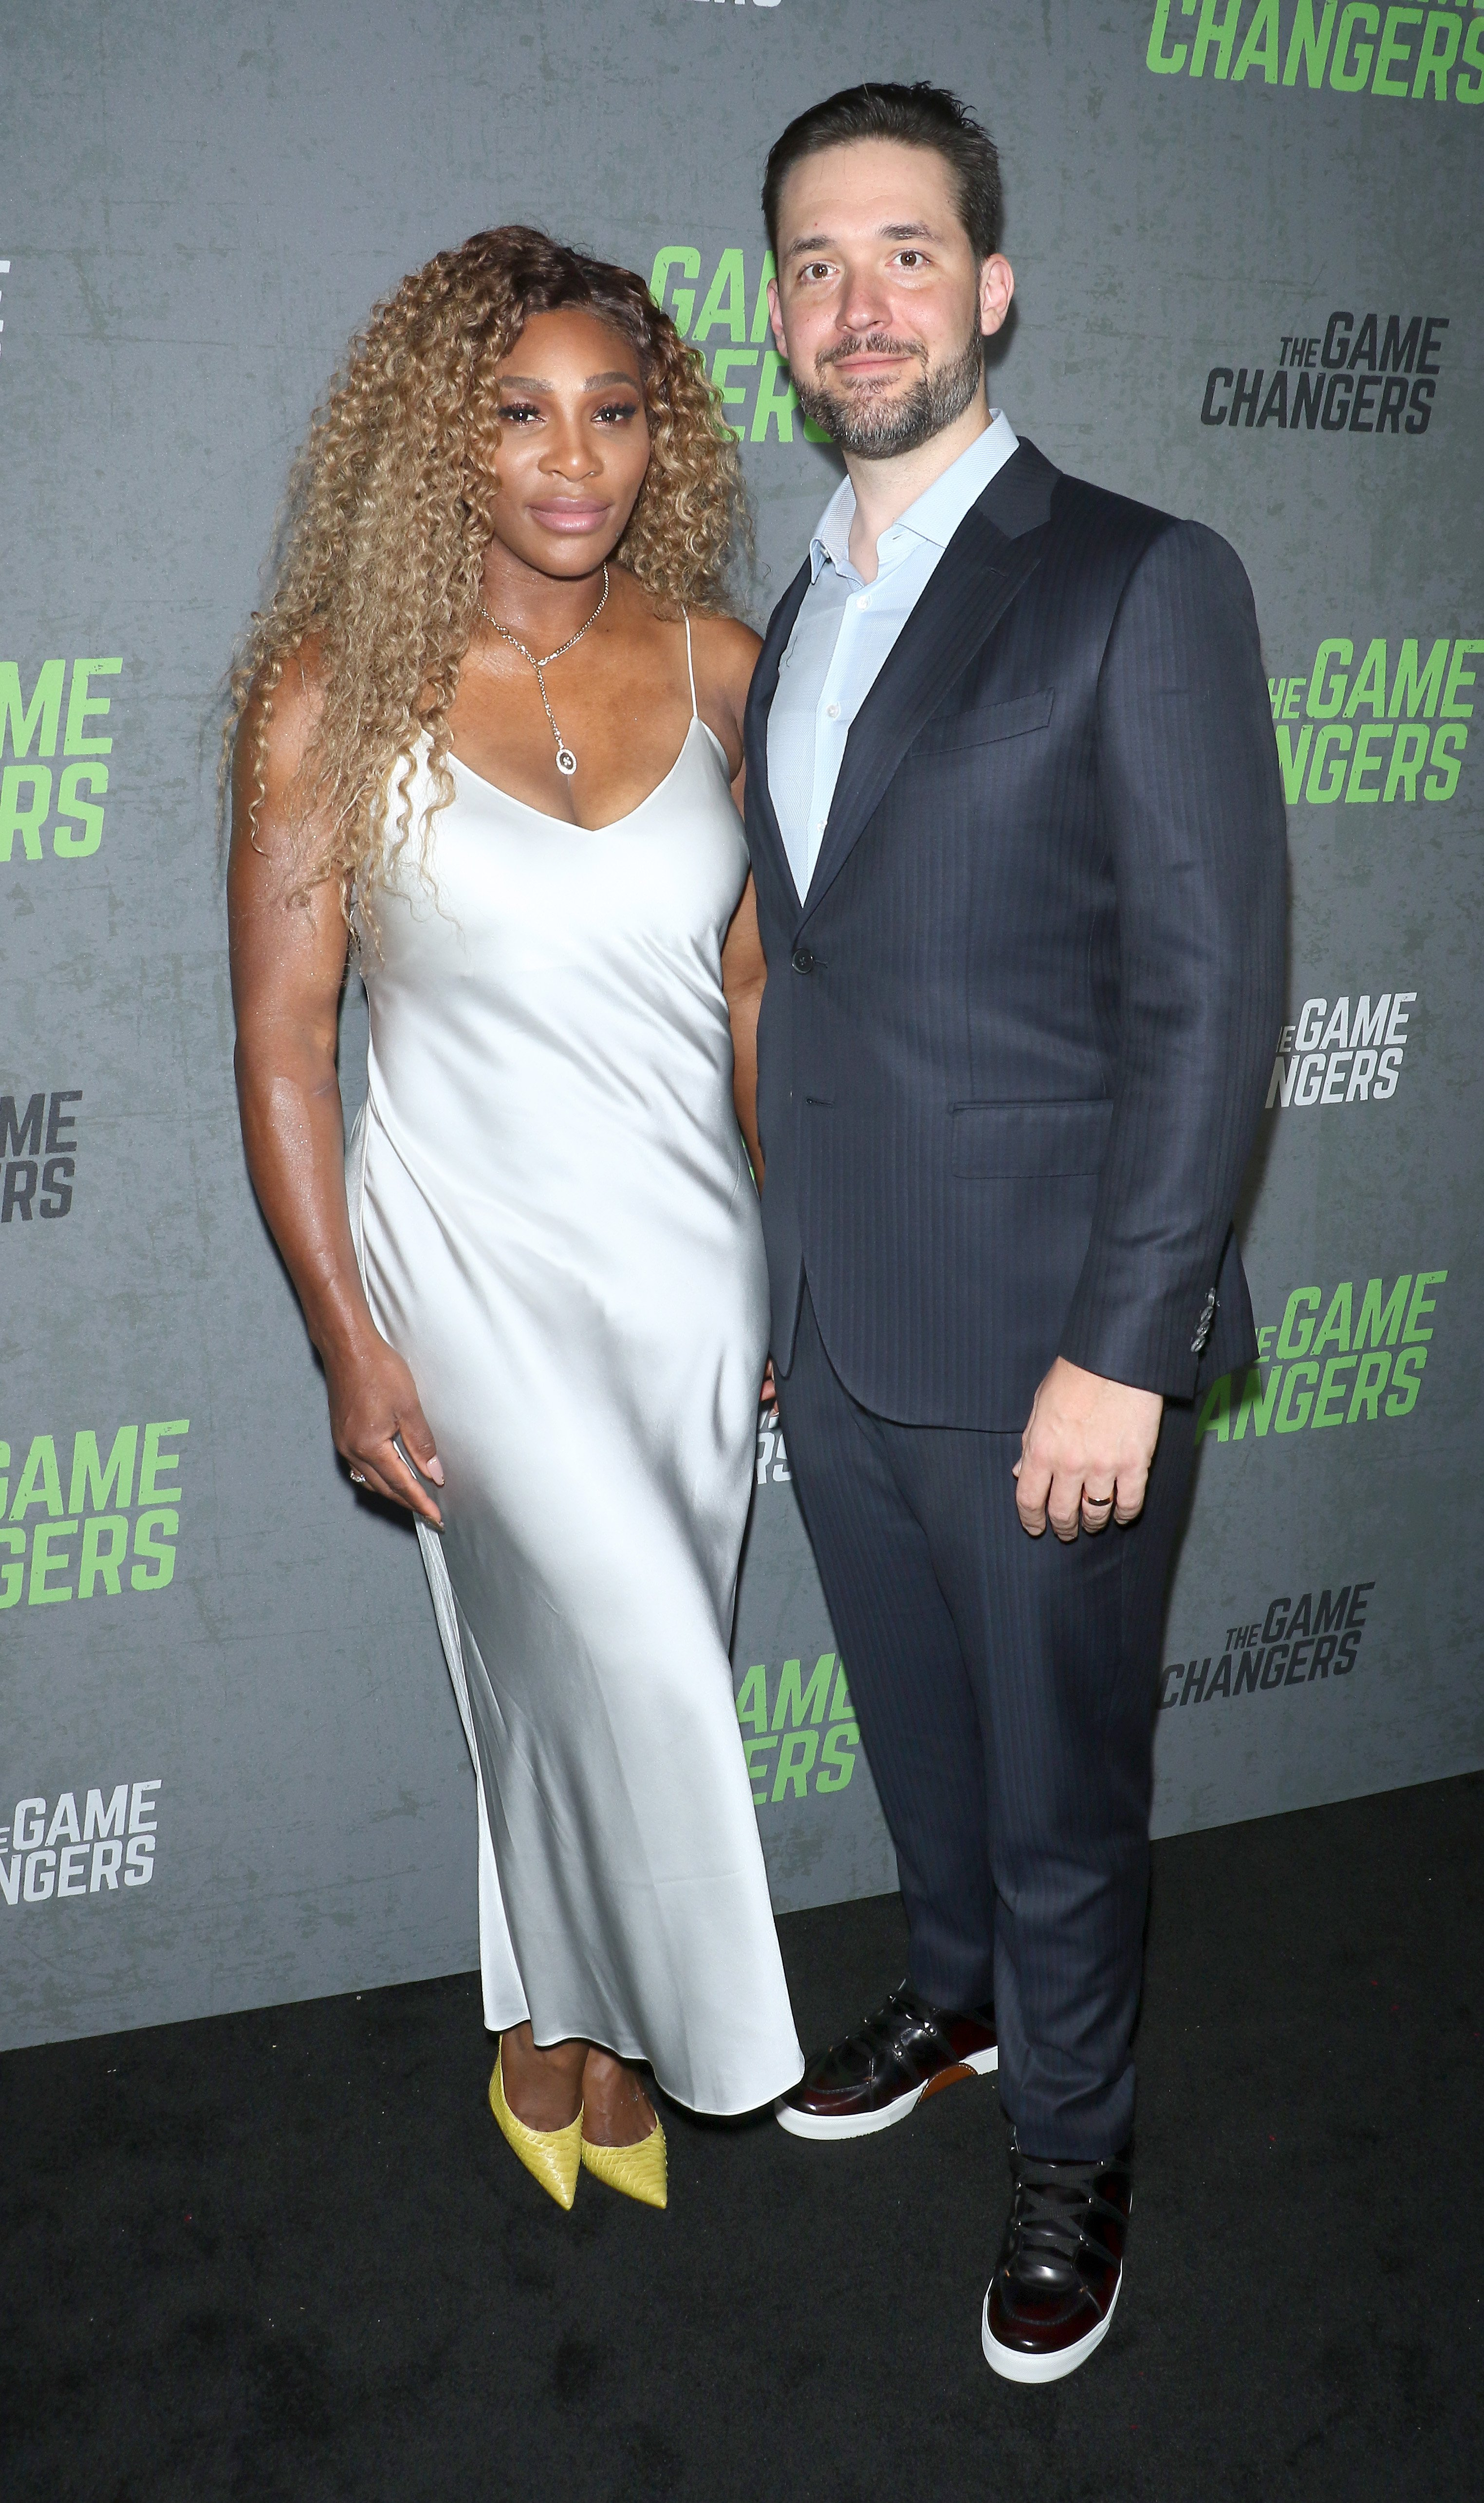 """Serena Williams & Alexis Ohanian at the """"The Game Changers"""" New York premiere on Sept. 09, 2019 